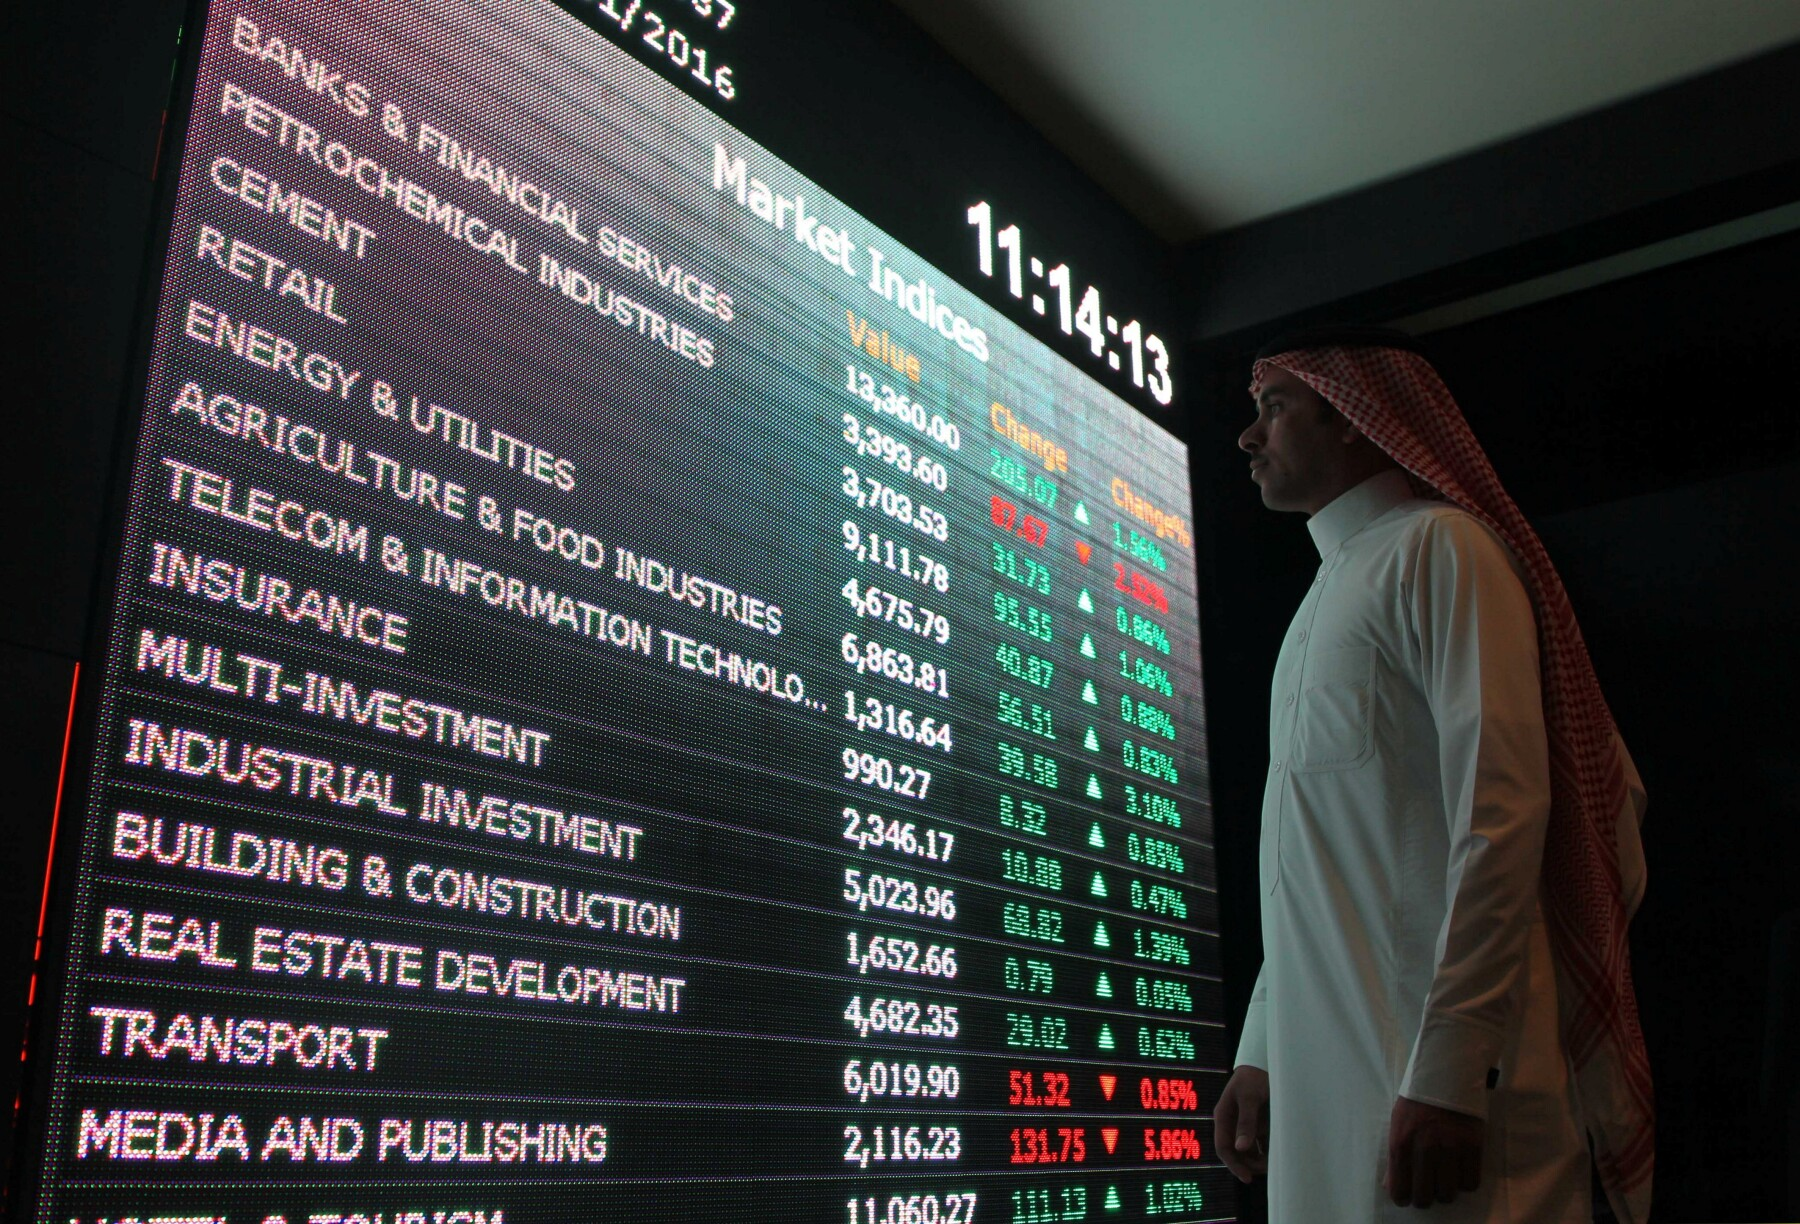 FILE PHOTO: An investor monitors a screen displaying stock information at the Saudi Stock Exchange (Tadawul) in Riyadh